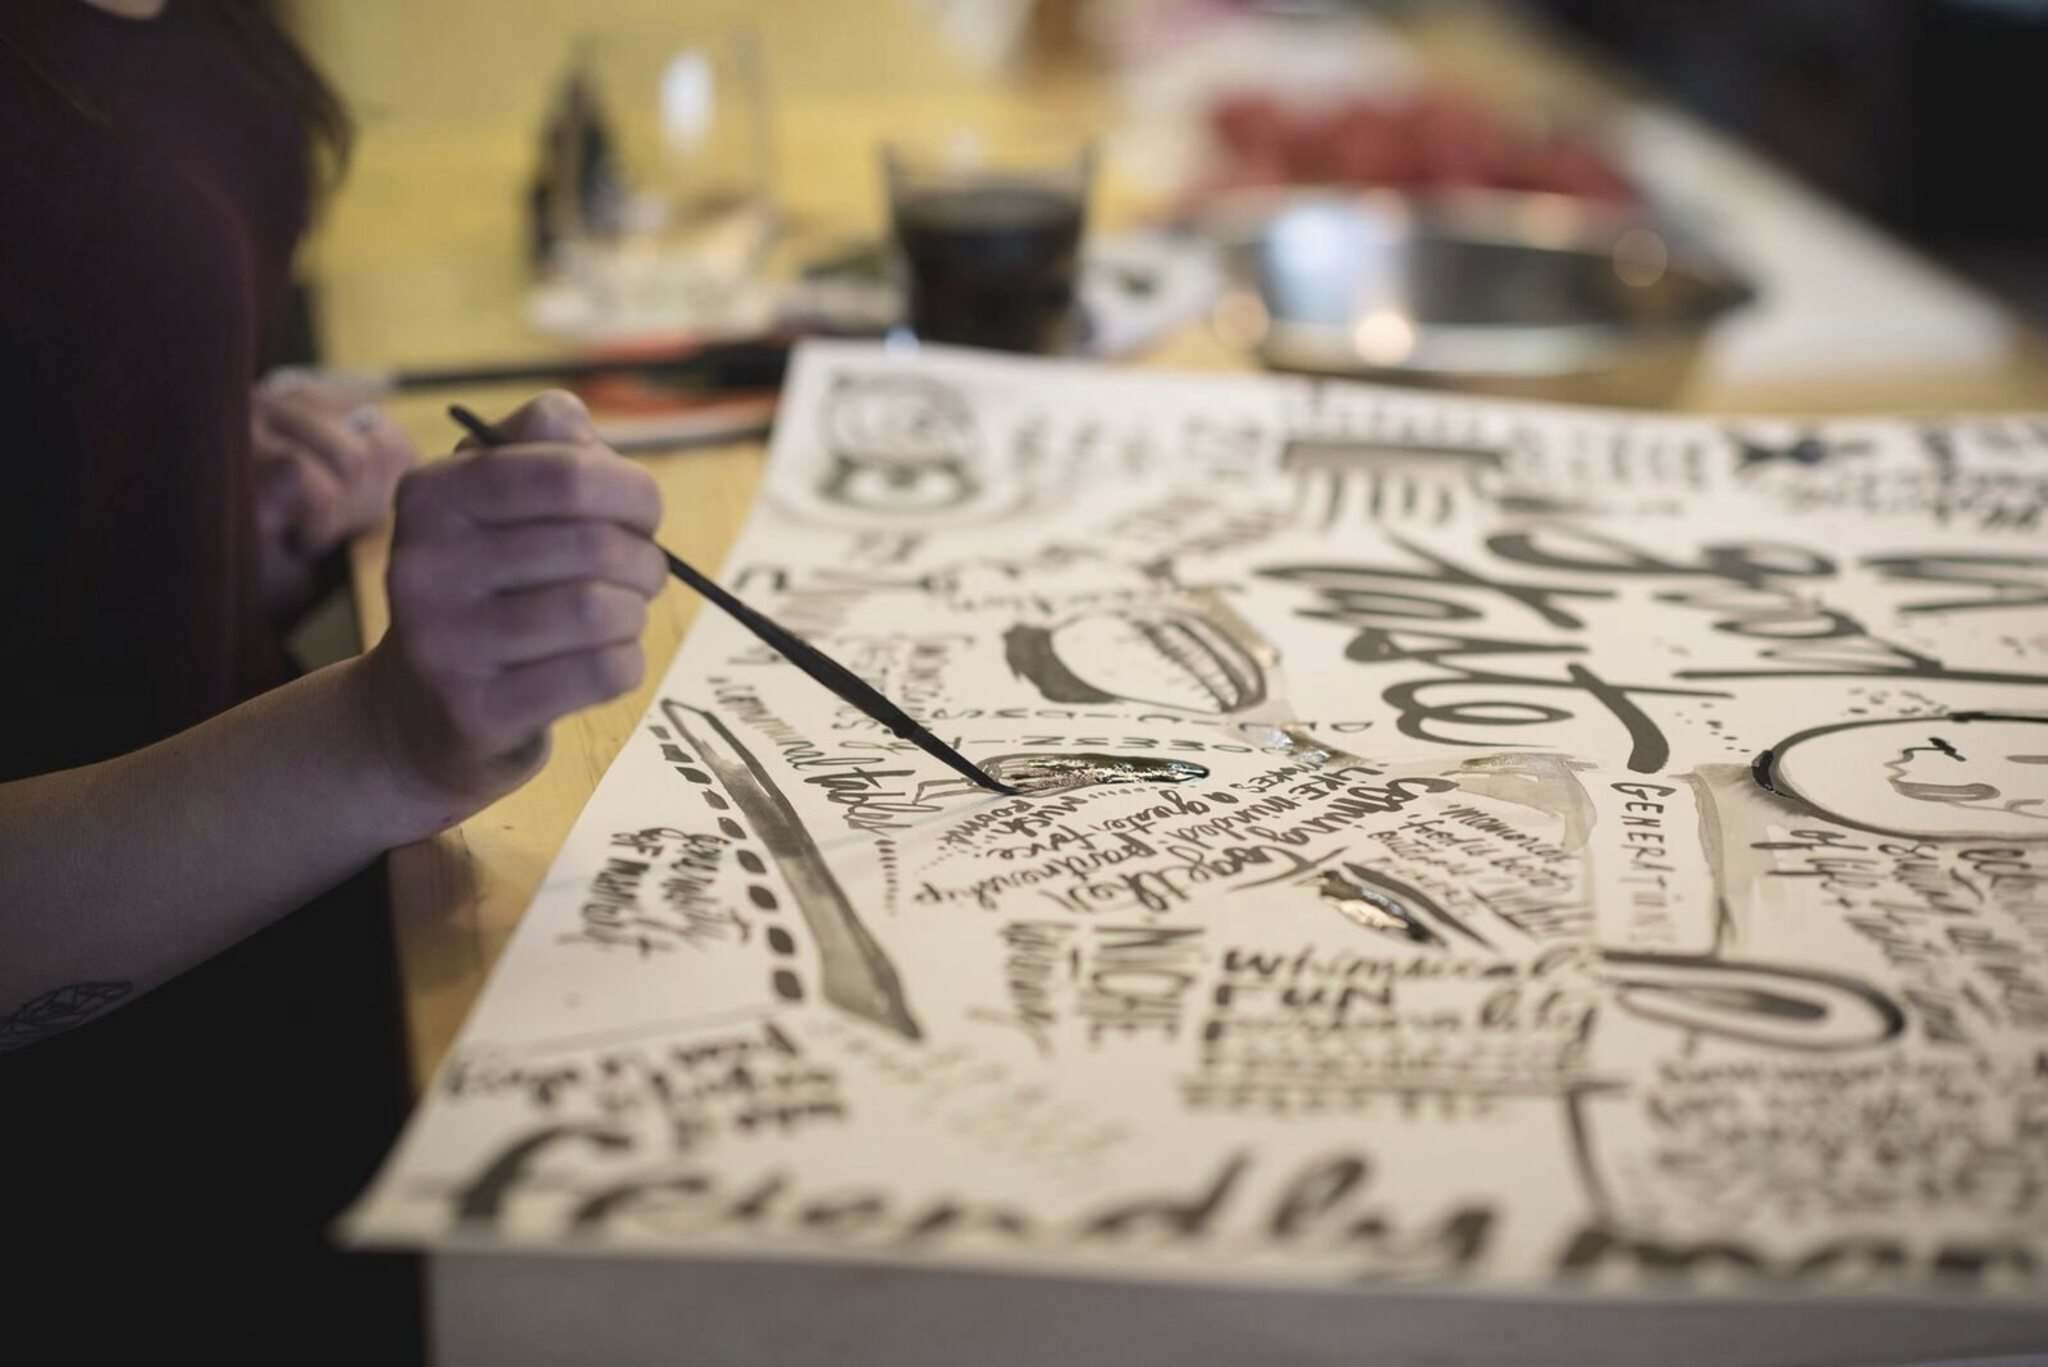 For each session, artist Kal Barteski creates a piece of work that features key ideas arising from the discussion.